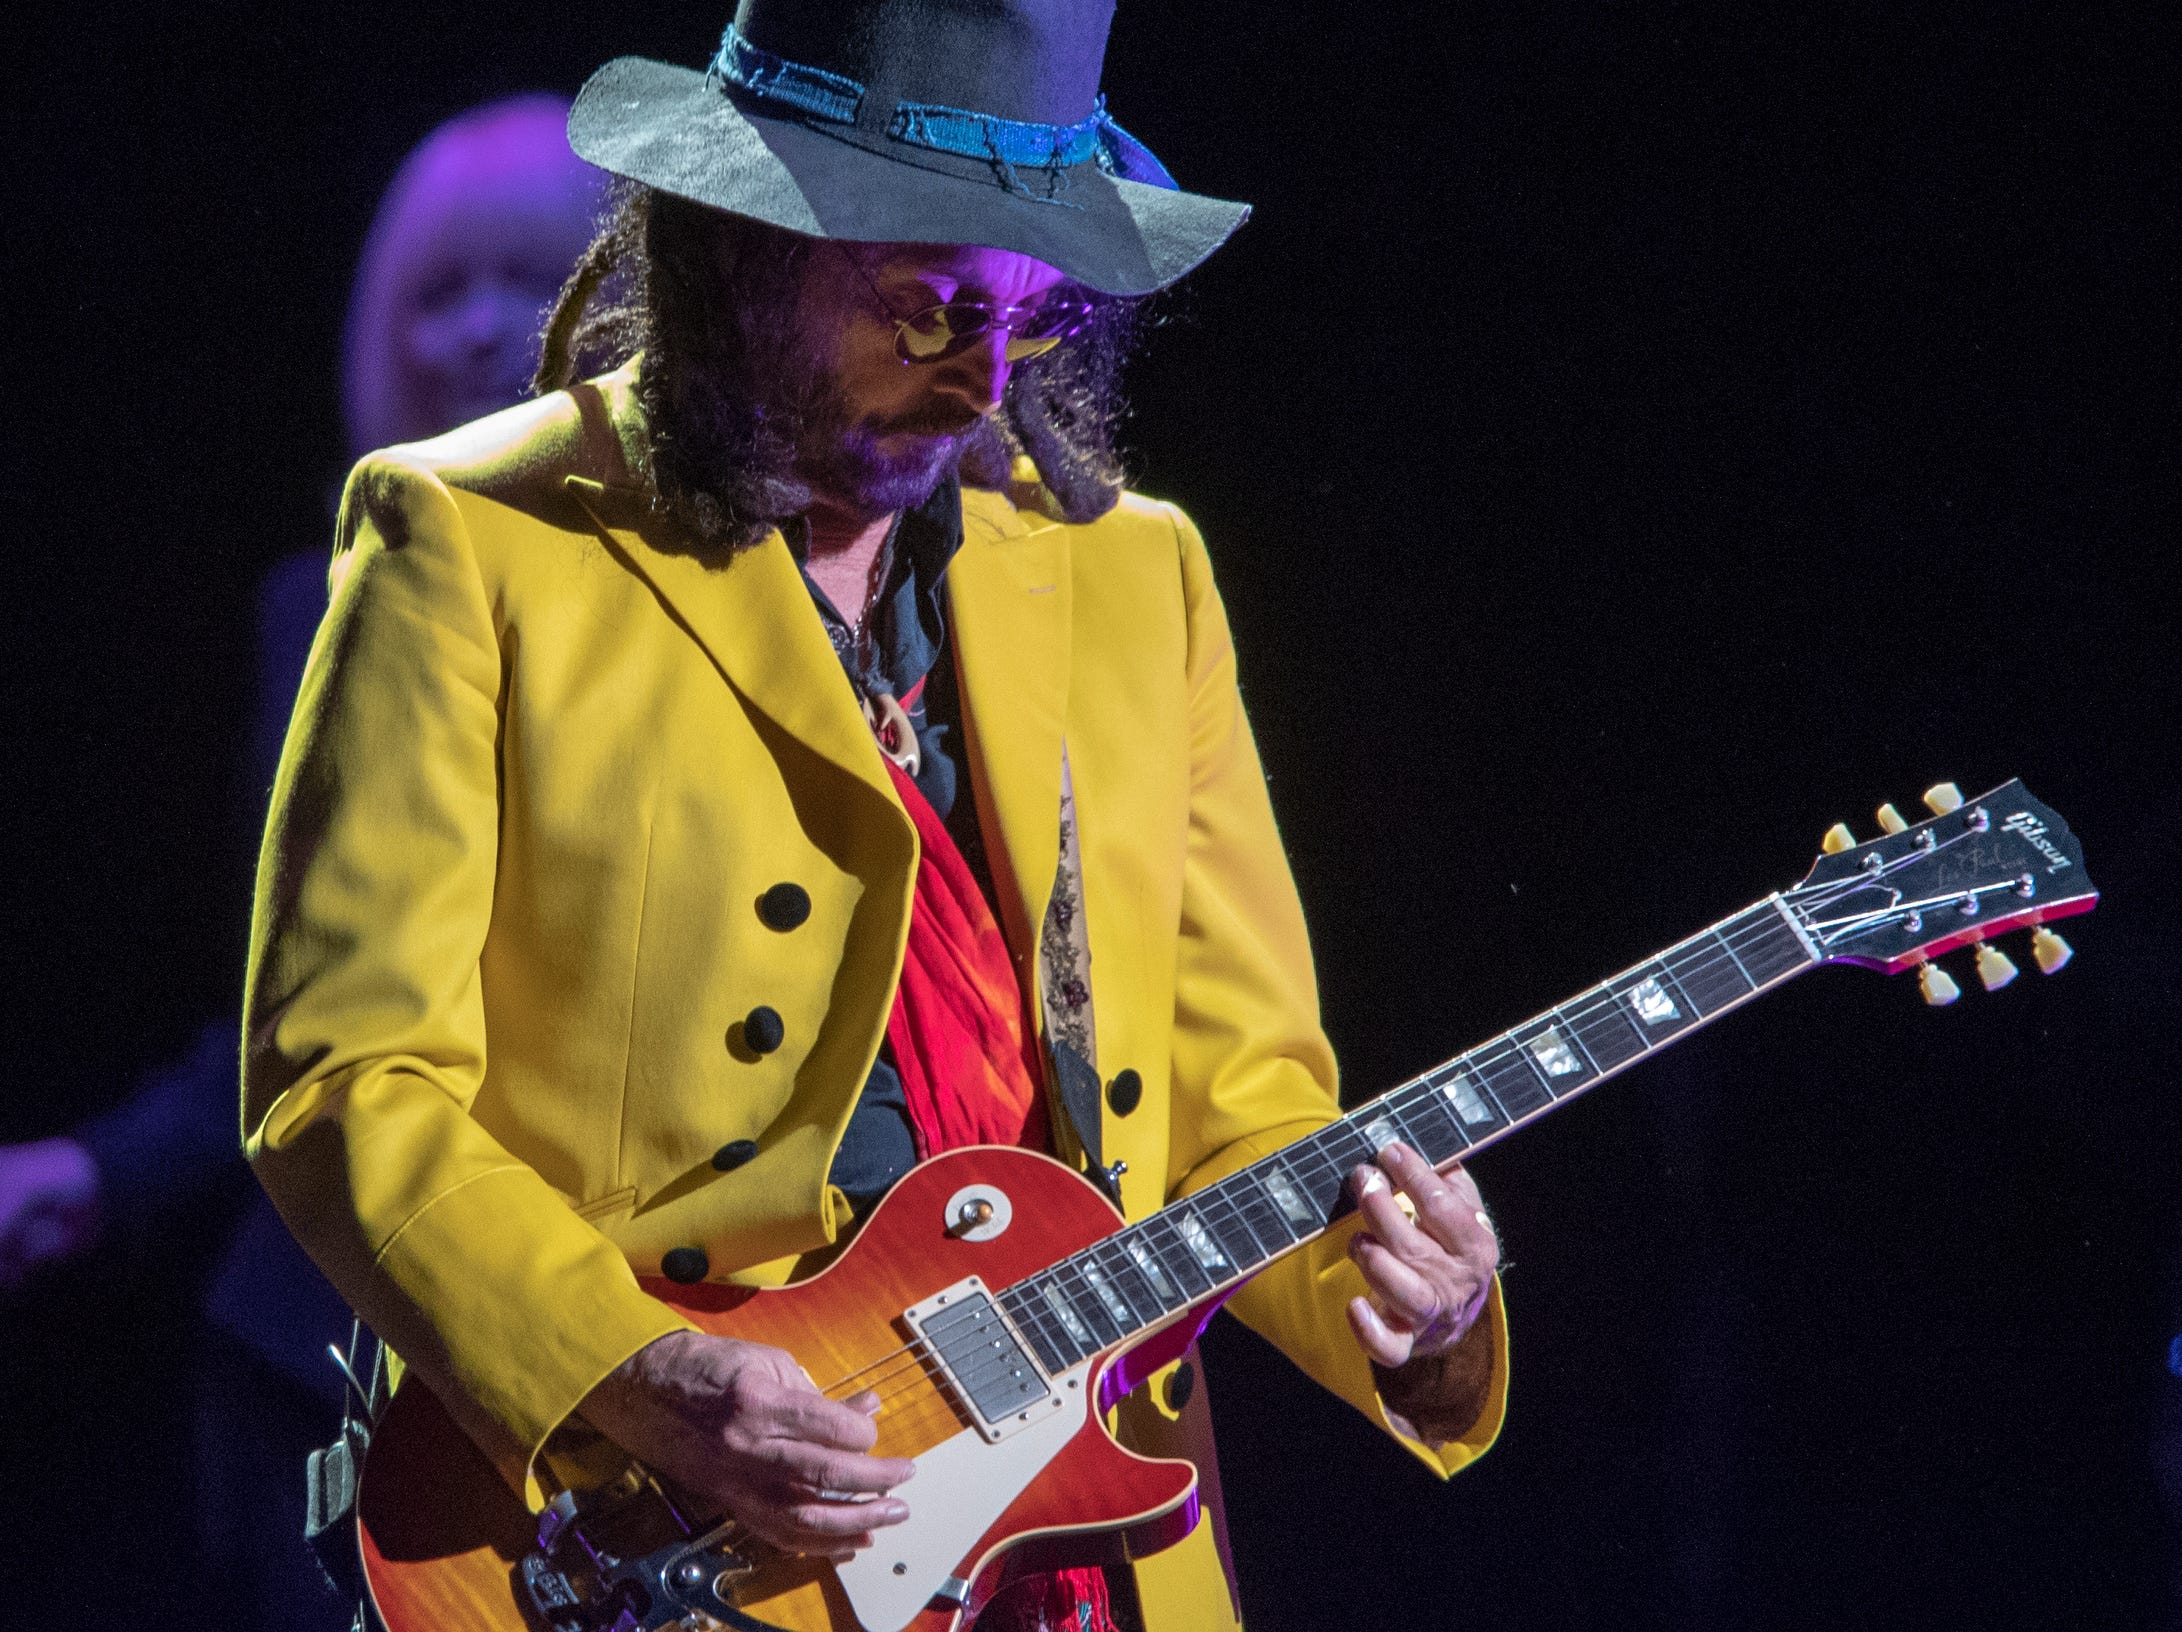 Mike Campbell, during a performance by Fleetwood Mac at Bankers Life Fieldhouse, Indianapolis, Tuesday, Oct. 16, 2018. The band is playing on their current North American tour.